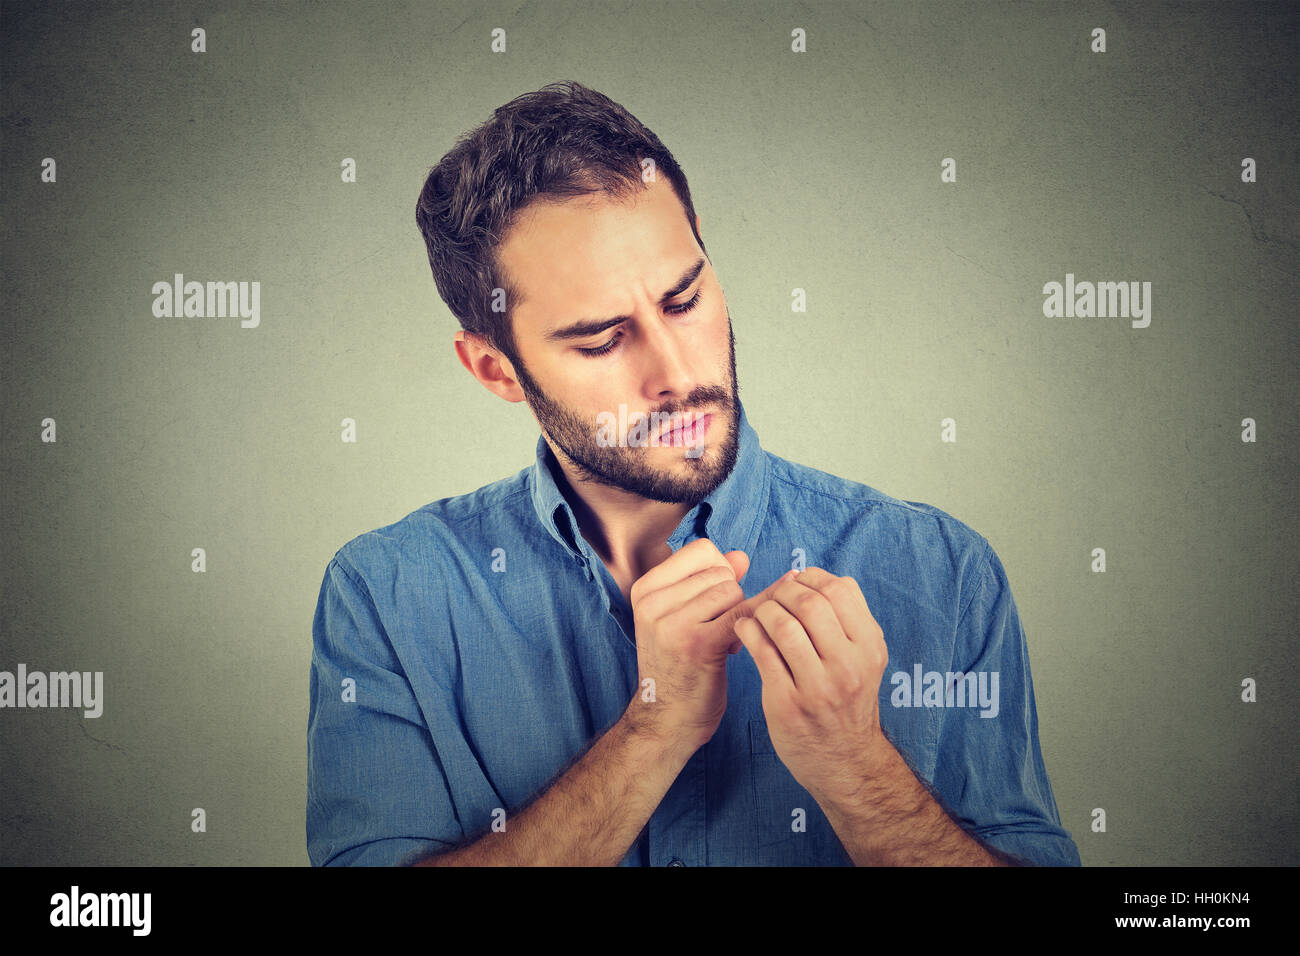 man looking at hands nails obsessing about cleanliness germs isolated on gray background. Emotion facial expression - Stock Image